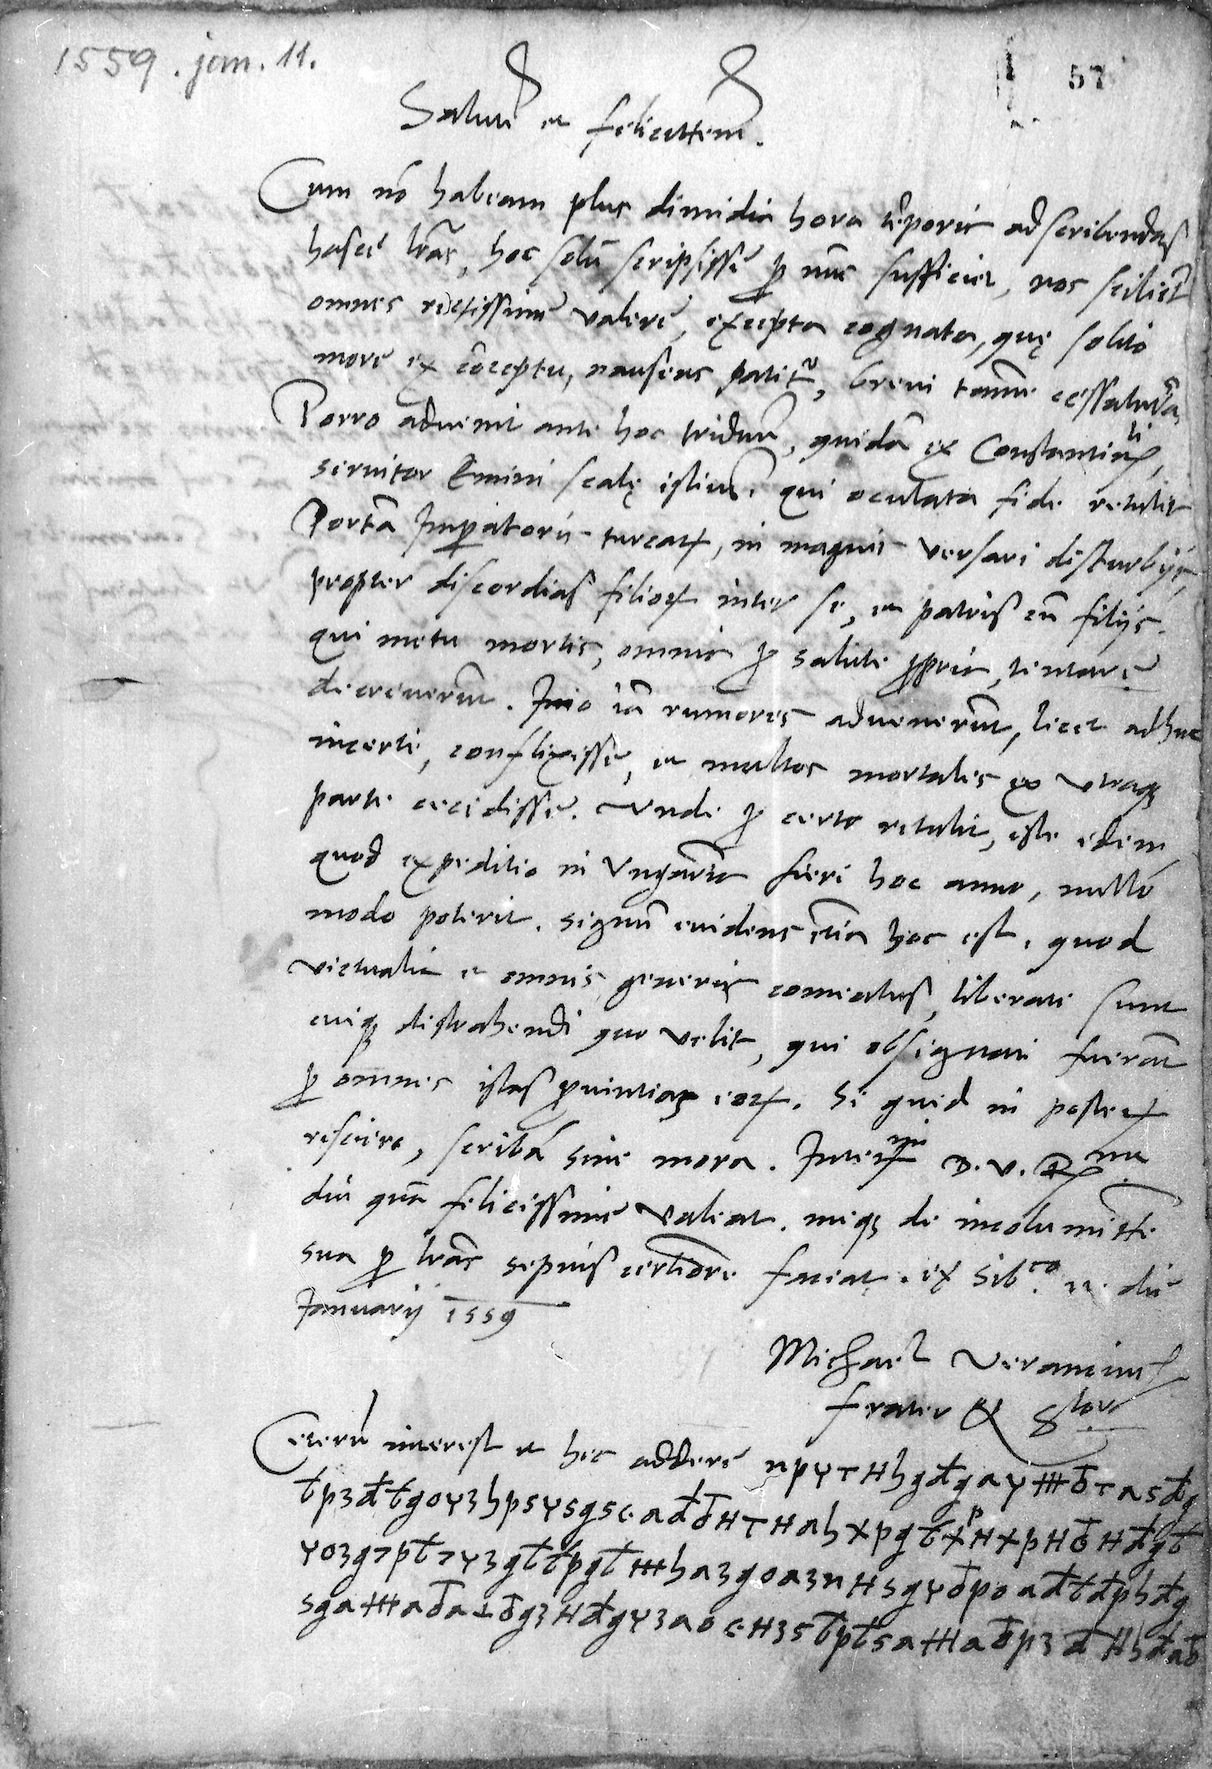 <strong>Appendix </strong>6 - Mihovil's letter from 11 January 1559 (Széchenyi? 57r)